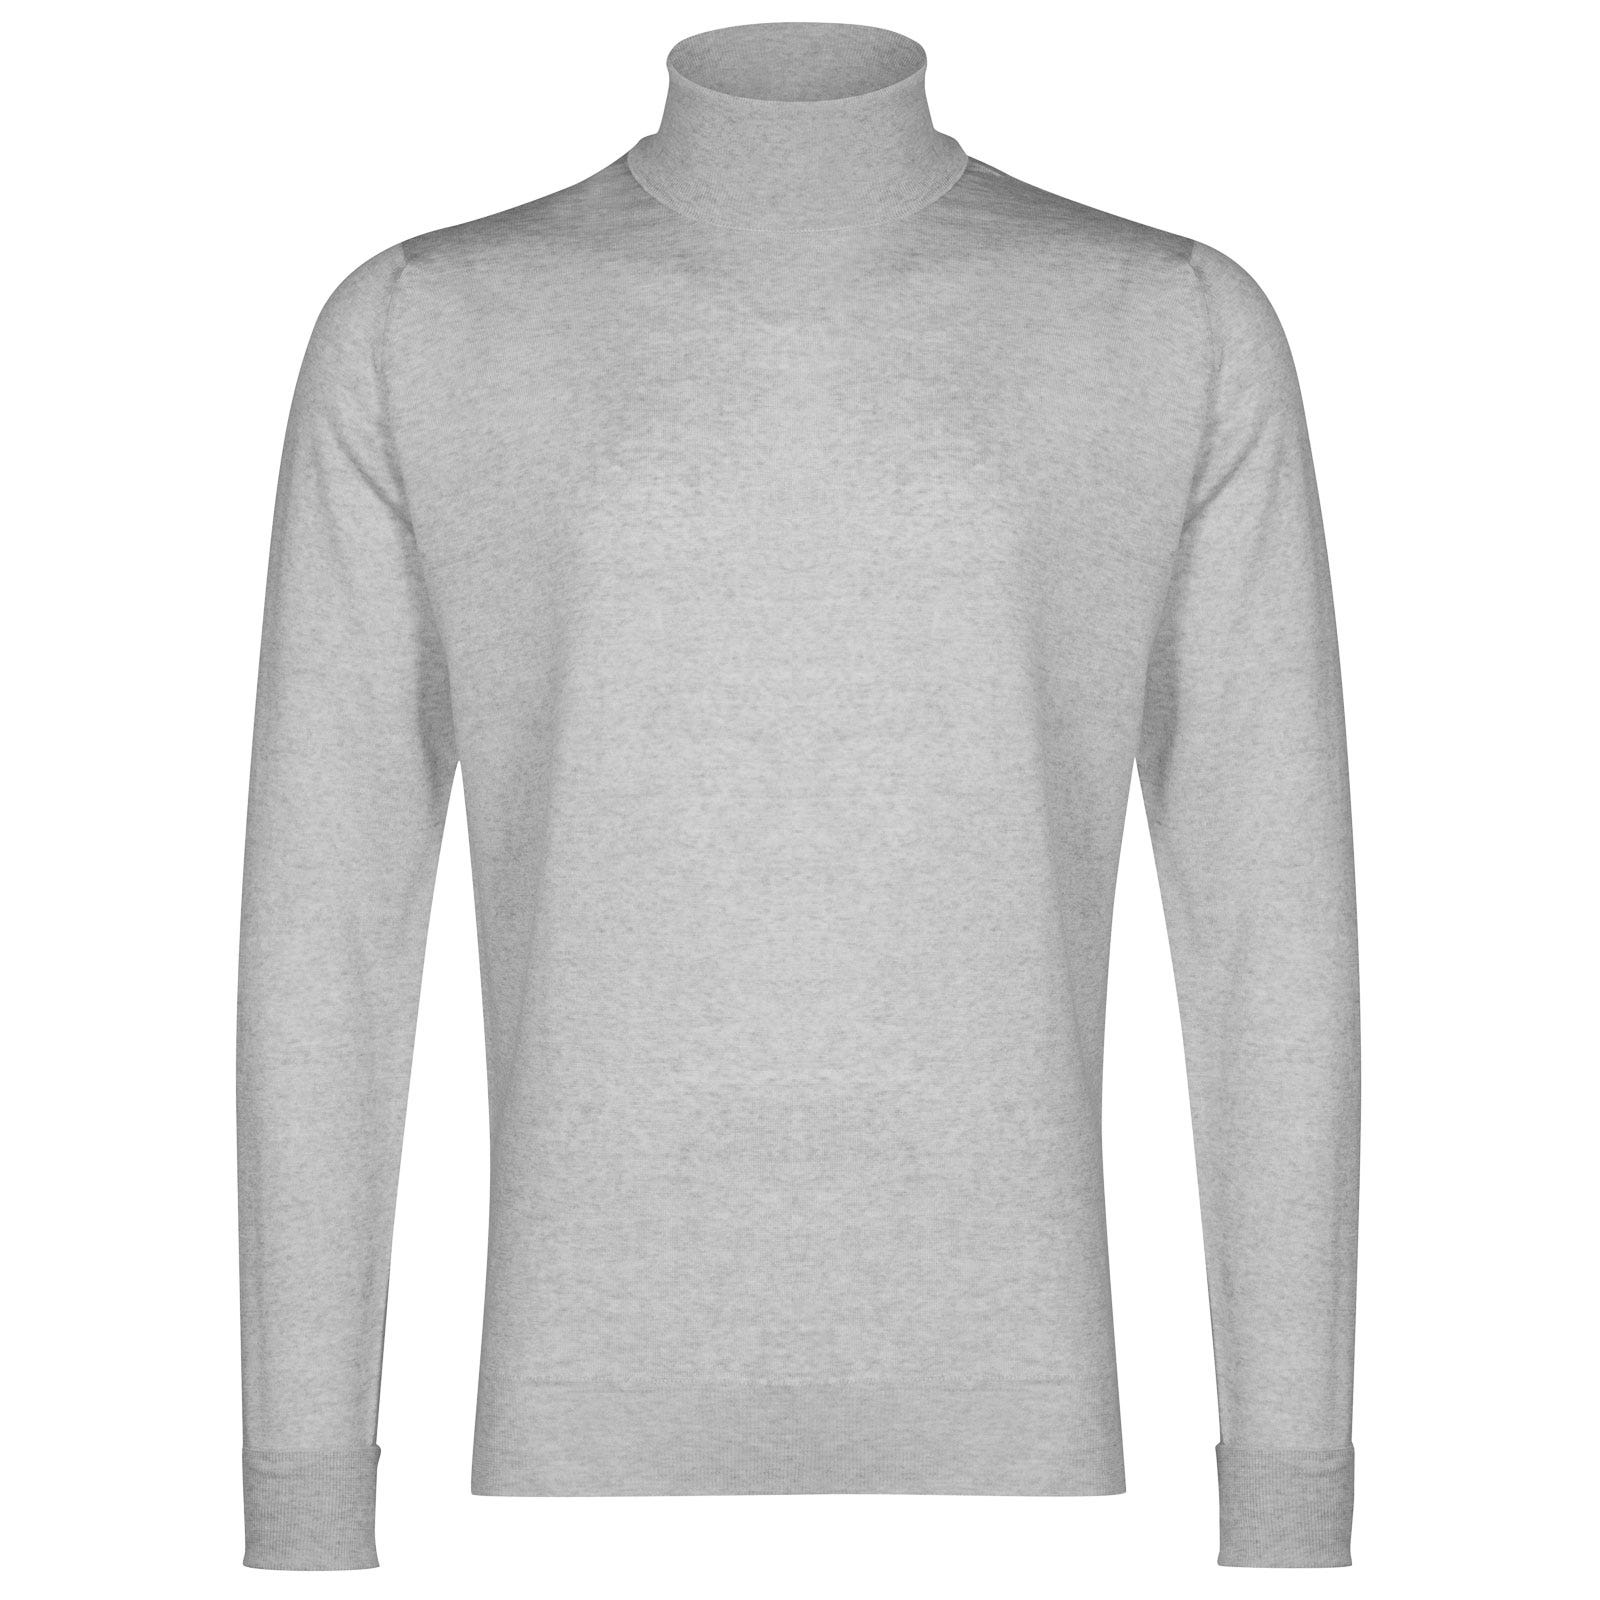 John Smedley richards Merino Wool Pullover in Bardot Grey-S